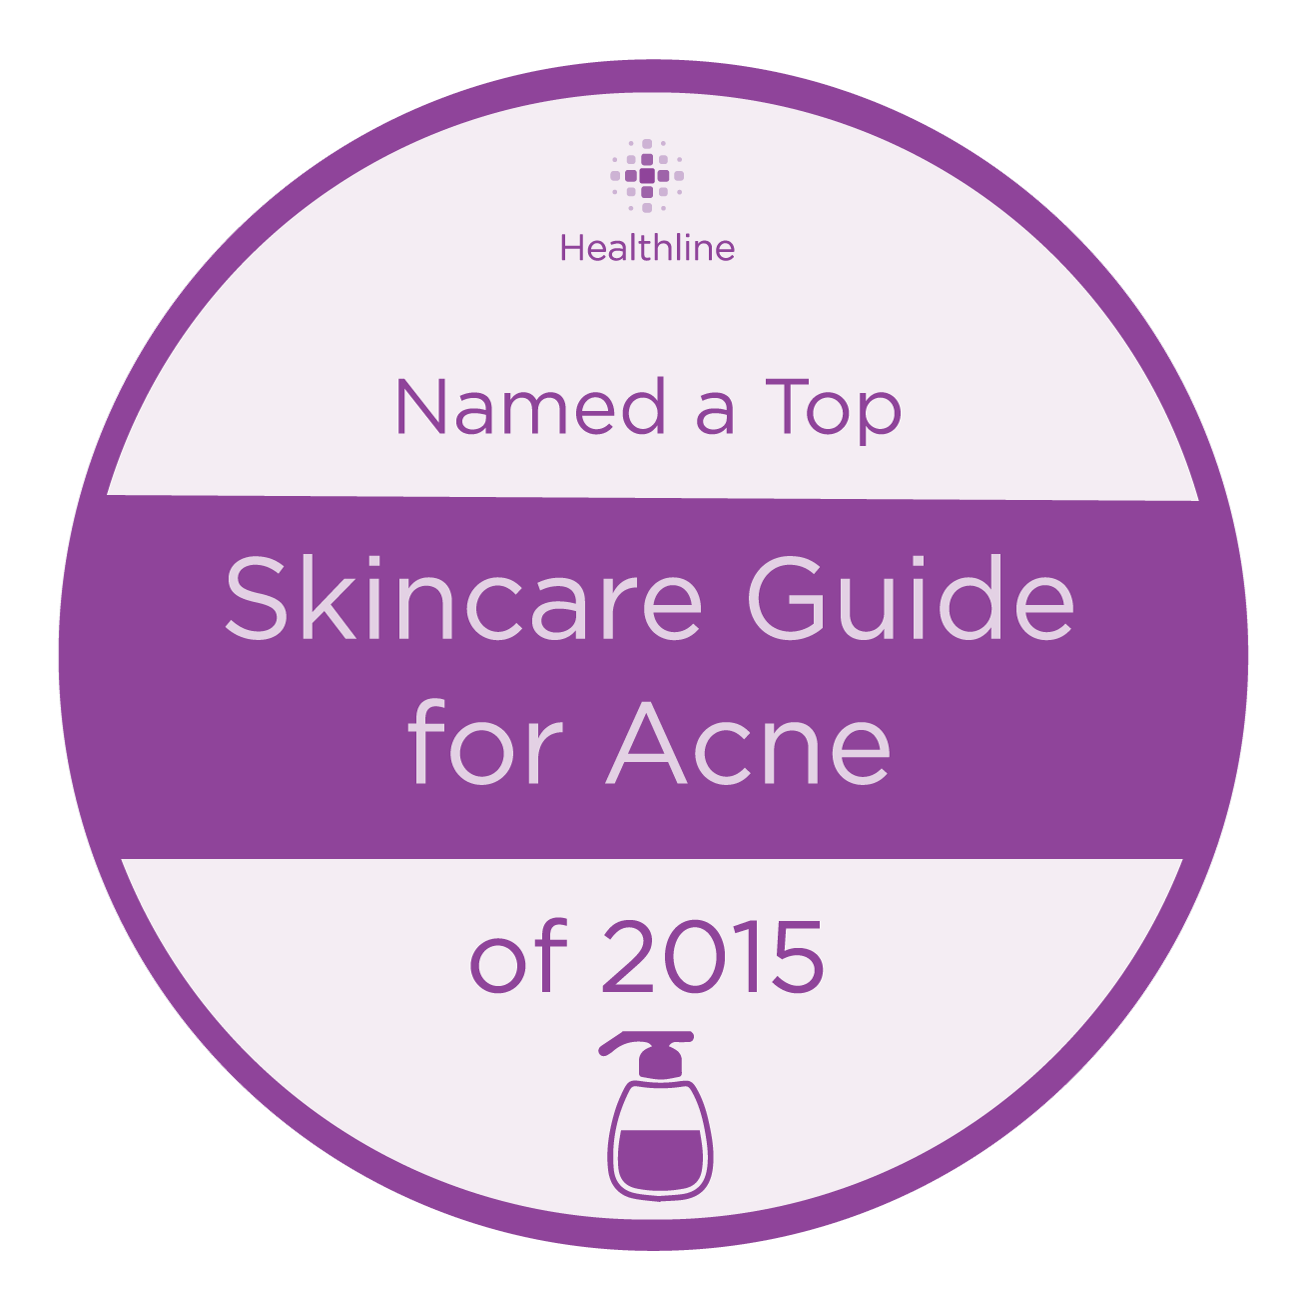 The Best Skin Care Guides for Acne